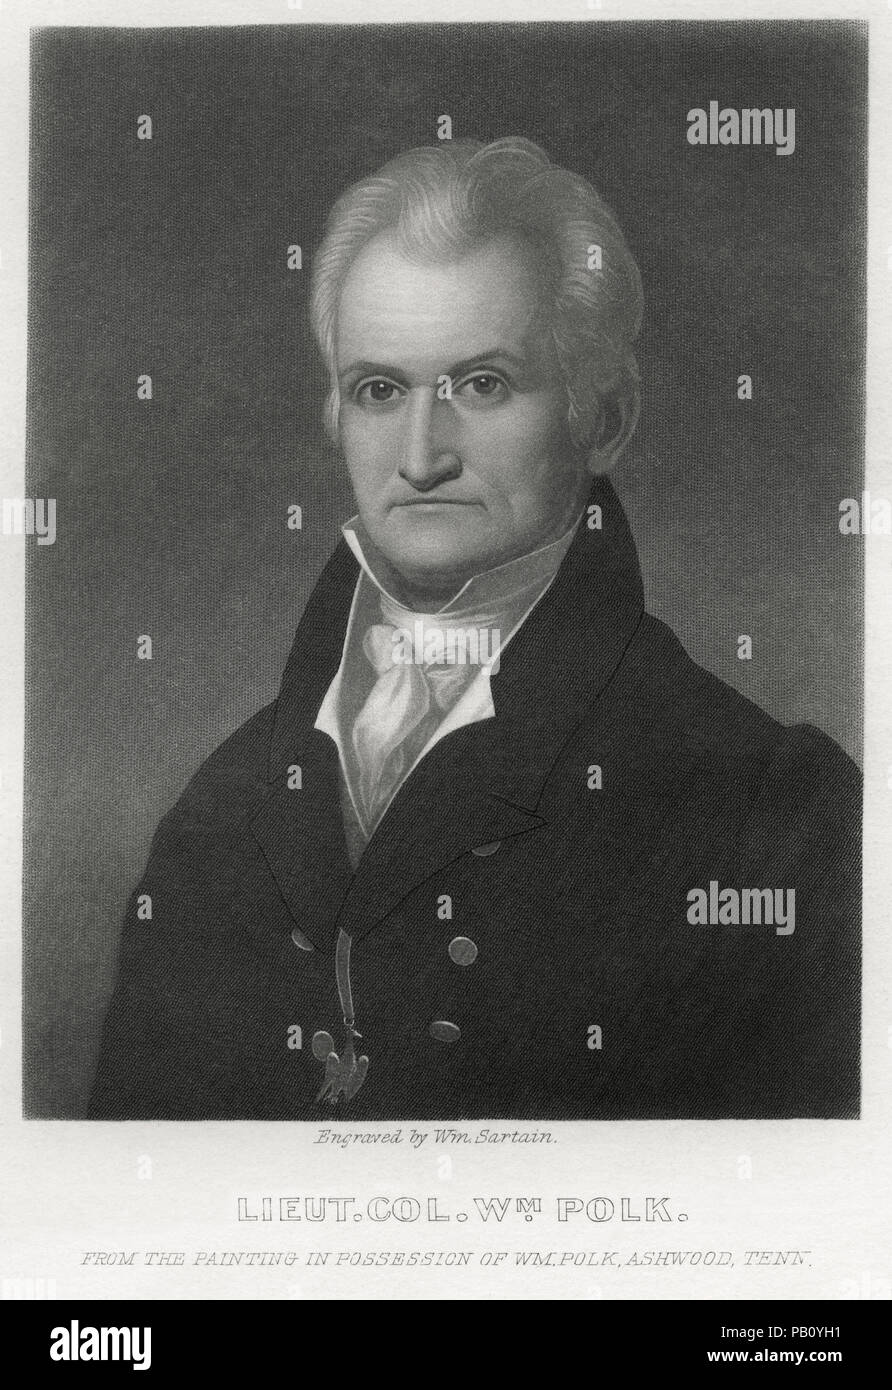 Lieutenant Colonel William Polk (1758-1834), Banker, Educational Administrator, Political Leader, and Renowned Continental officer in the War for American Independence, Illustration from the Original Painting in Possession of William Polk, Ashwood, Tennessee - Stock Image